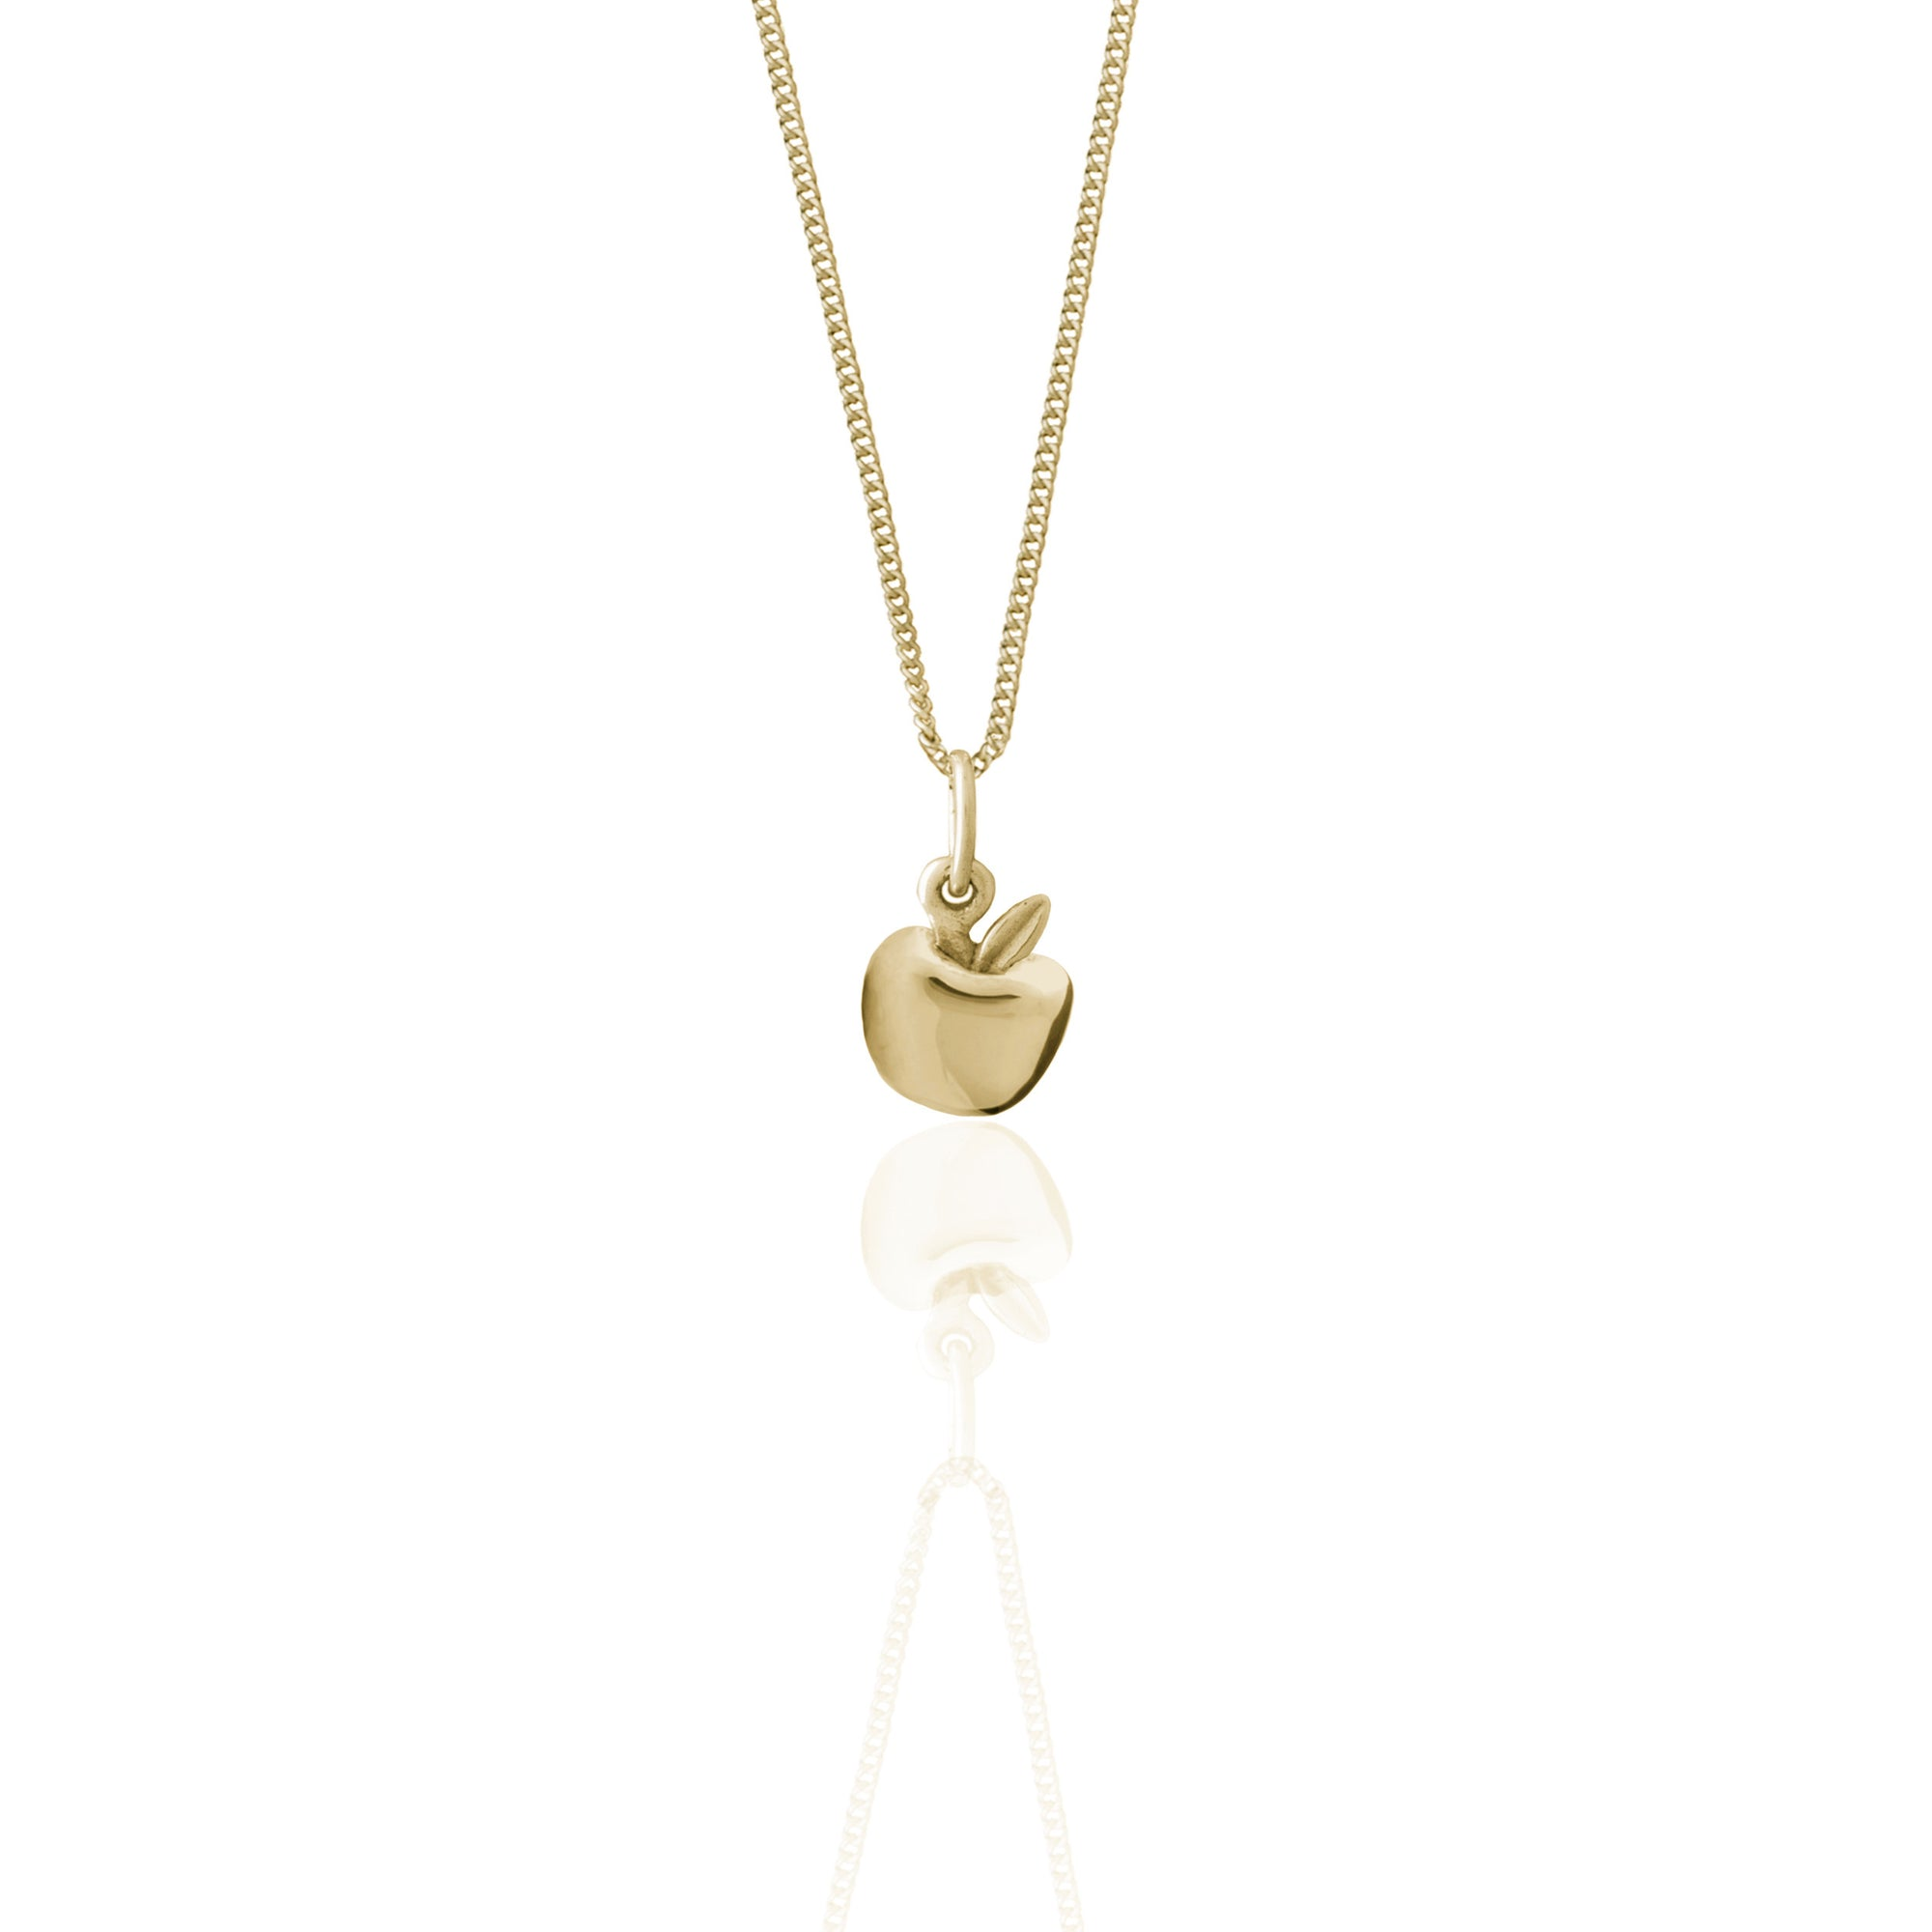 Luna & Rose - Apple of My Eye Charm Necklace - Gold